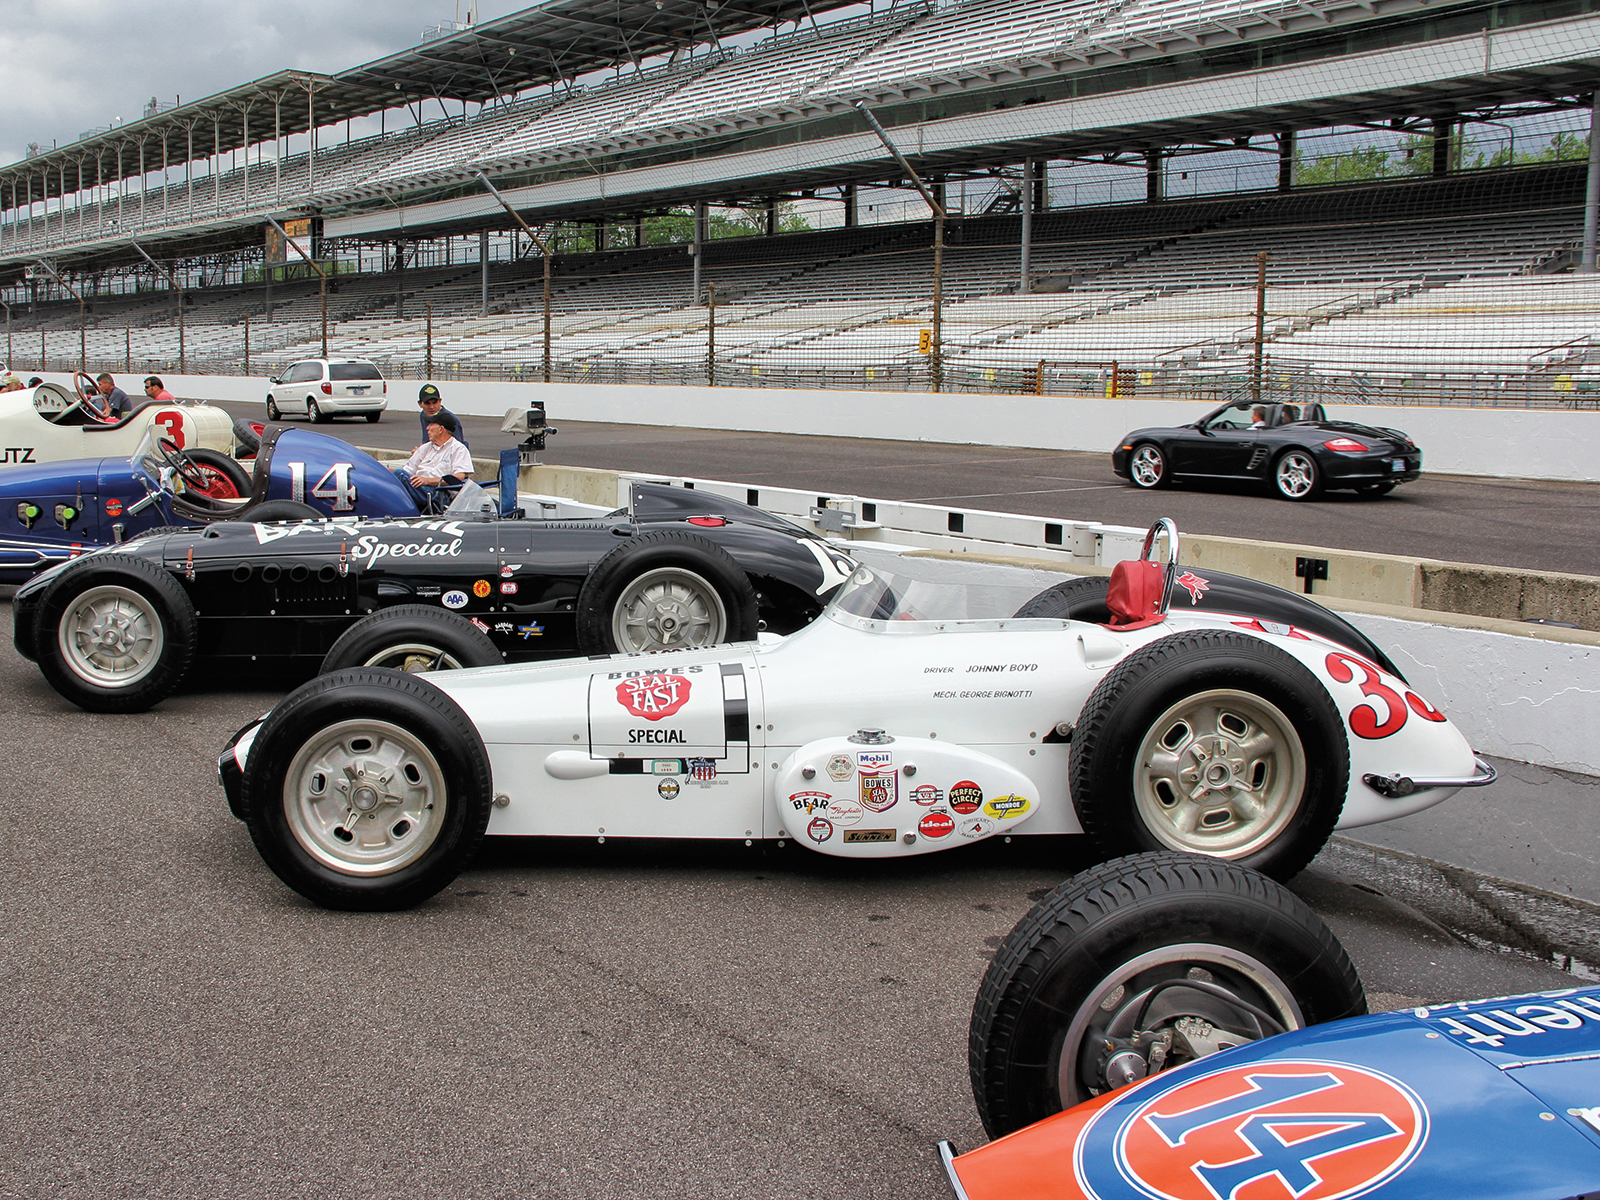 The Wednesday before the Indy 500 is Community Day, when locals are invited to check out the track and even take their cars out for a lap, as seen beyond the Bowes roadster. Behind the Bowes roadster is Akin's '53 Kurtis roadster, and in the foreground his other Epperly roadster, the Mid-Continent race car from the '62 race.